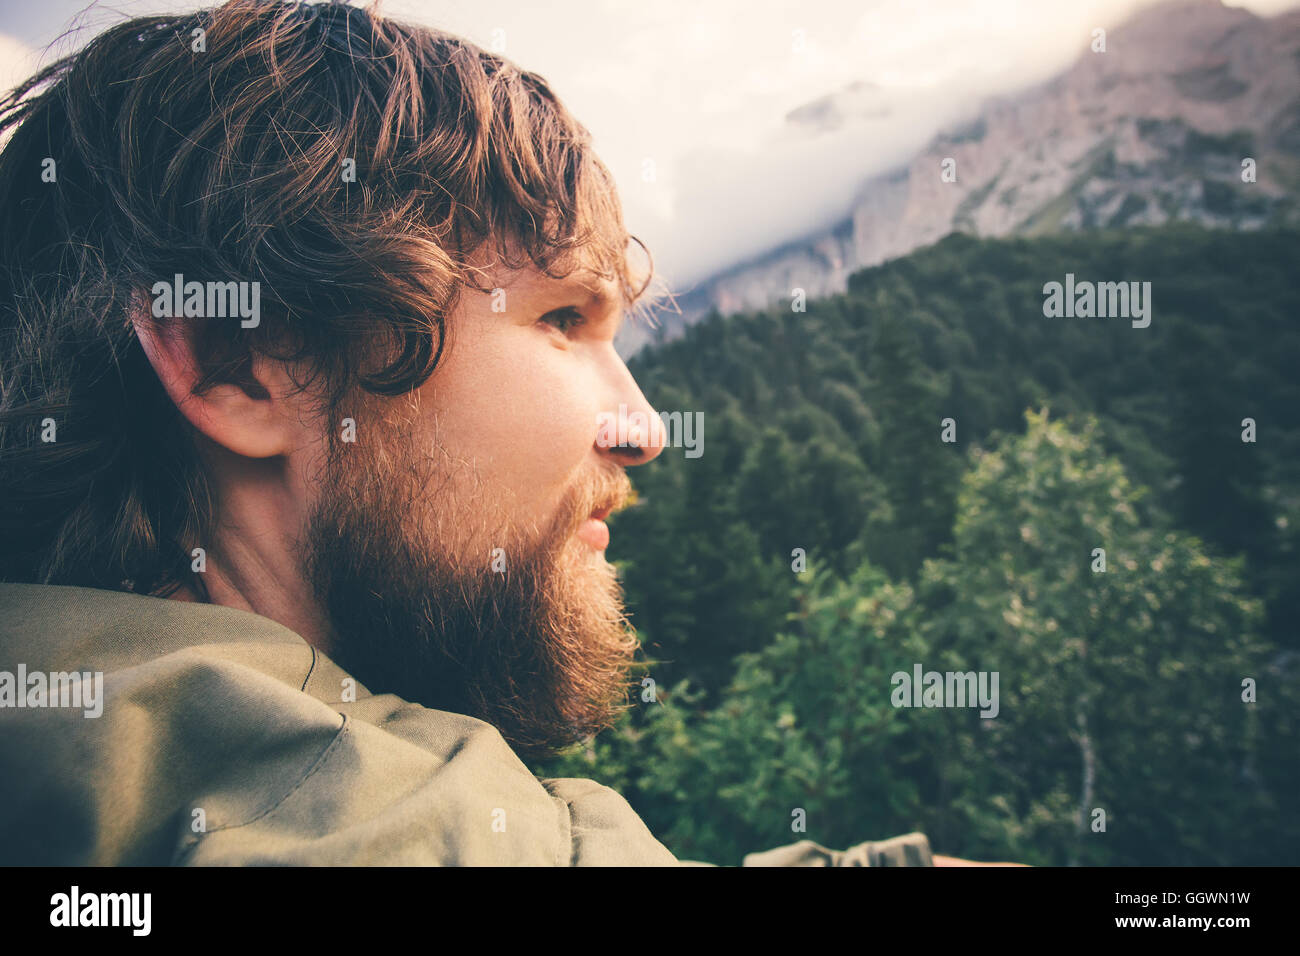 Man Traveler bearded face outdoor Travel Lifestyle concept cloudy mountains and forest landscape on background Summer - Stock Image